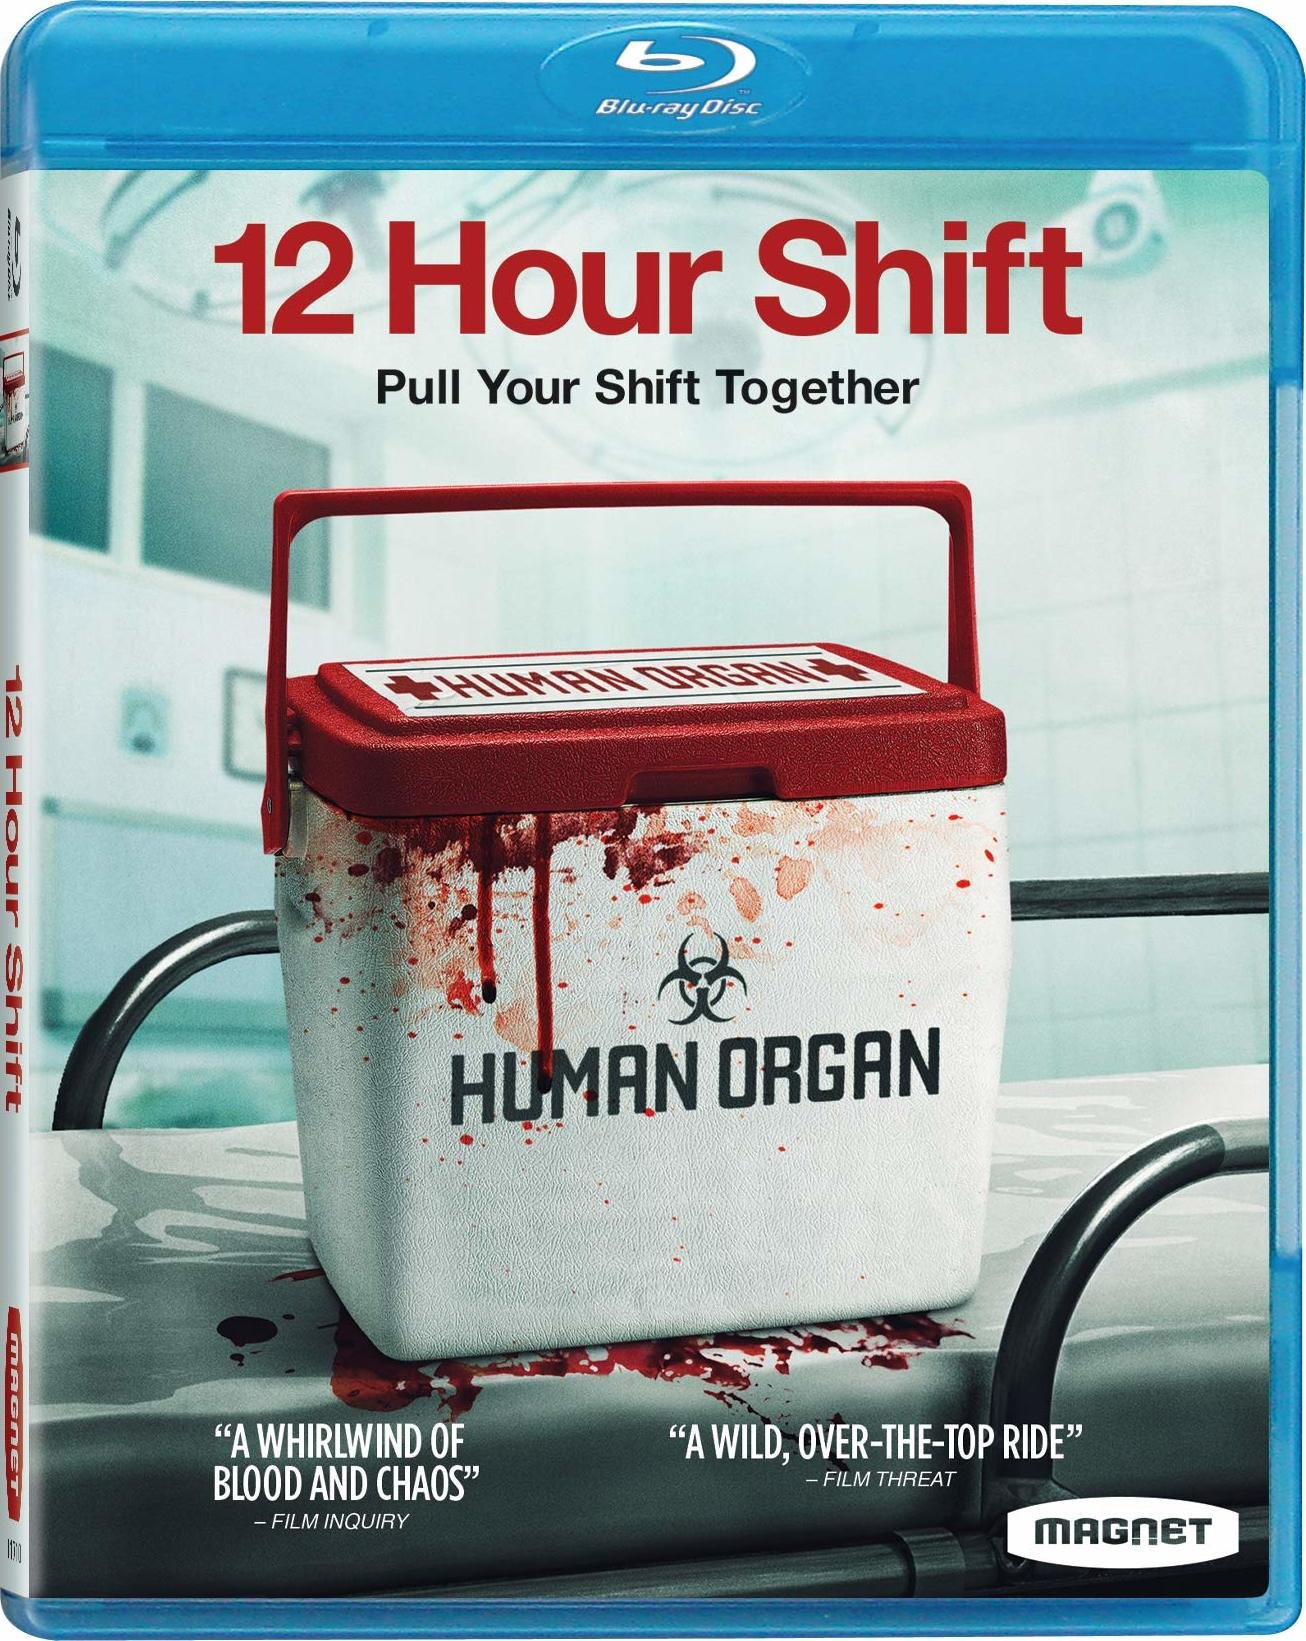 12 Hour Shift (2020) poster image